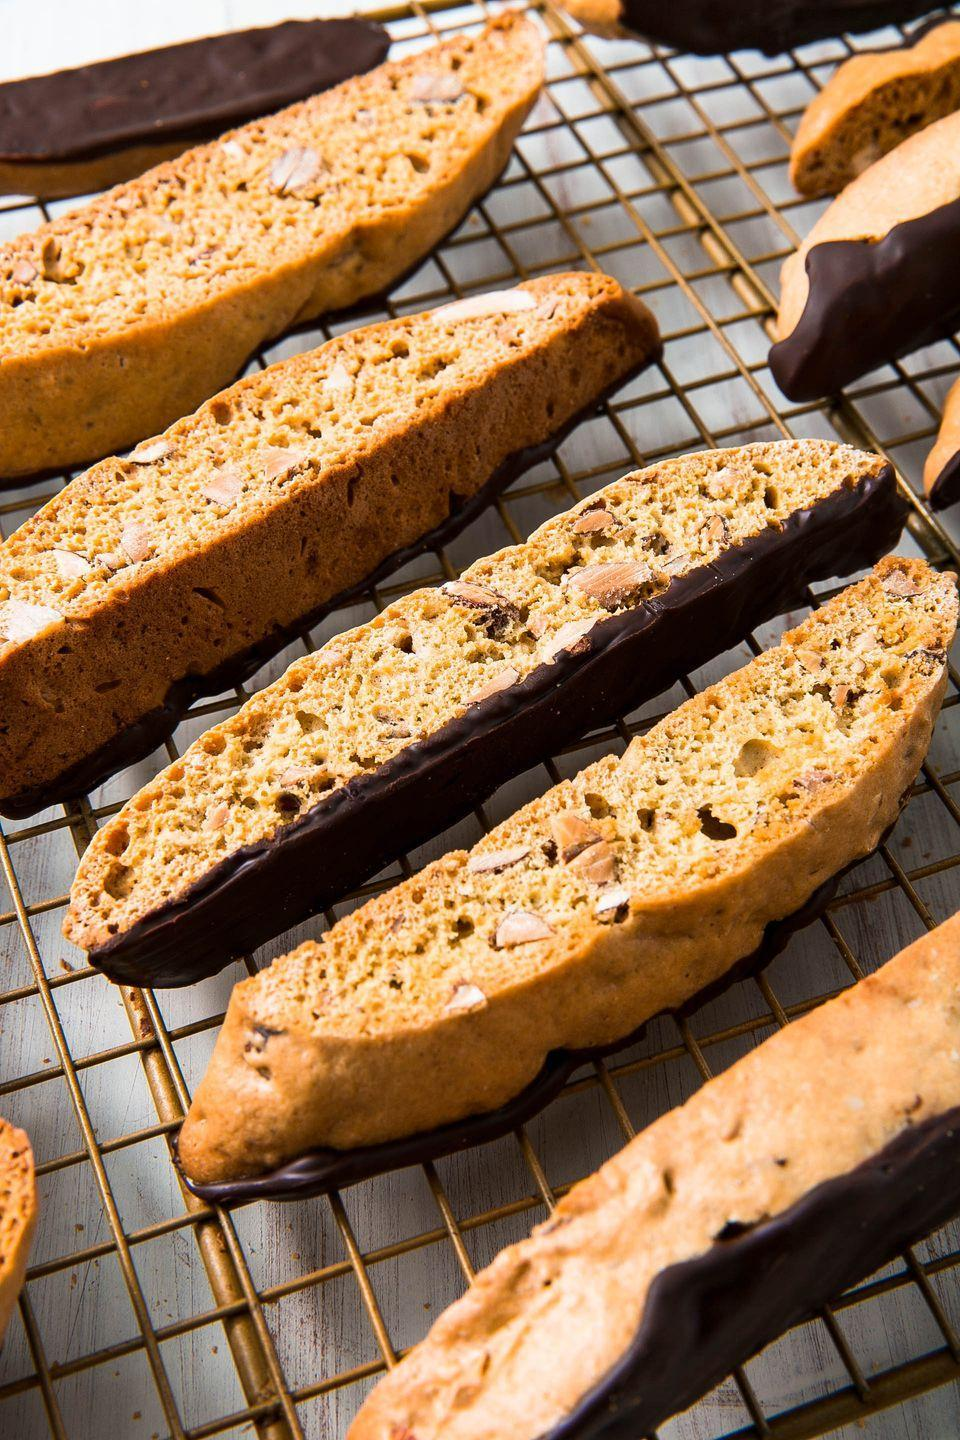 "<p>Biscotti is made to be a little dry (so that you can dip it in coffee!) which makes it perfect for sending as a gift. This biscotti is full of toasted almonds and can be dipped in chocolate for a little something extra. </p><p>Get the recipe from <a href=""https://www.delish.com/cooking/recipe-ideas/a25486278/biscotti-recipe/"" rel=""nofollow noopener"" target=""_blank"" data-ylk=""slk:Delish"" class=""link rapid-noclick-resp"">Delish</a>.</p>"